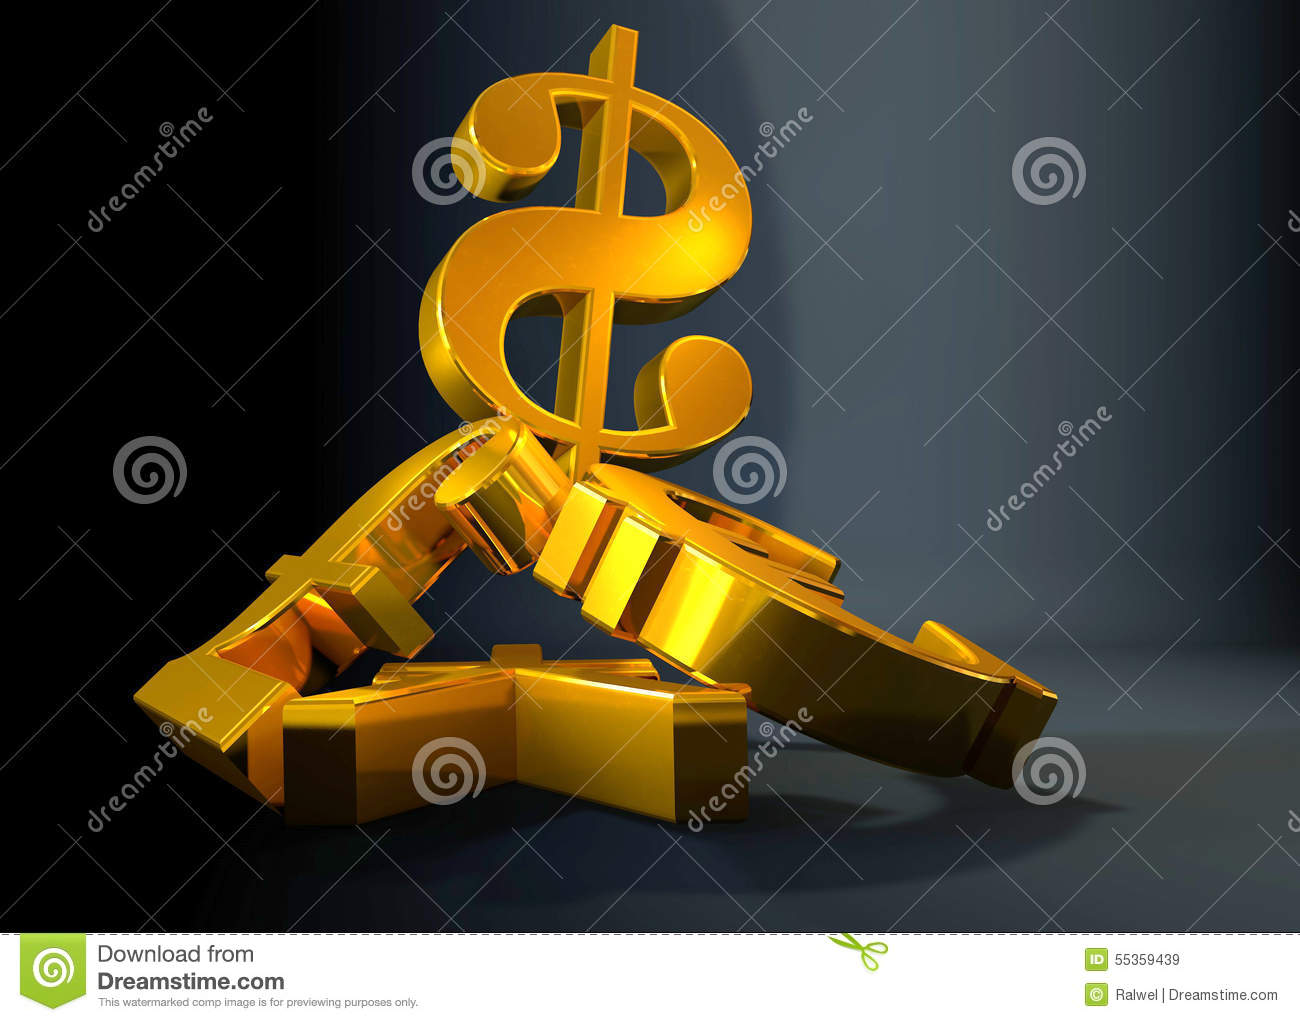 Golden currency us dollar symbol rising over a pile of poundeuro golden currency us dollar symbol rising over a pile of poundeuroyen buycottarizona Choice Image